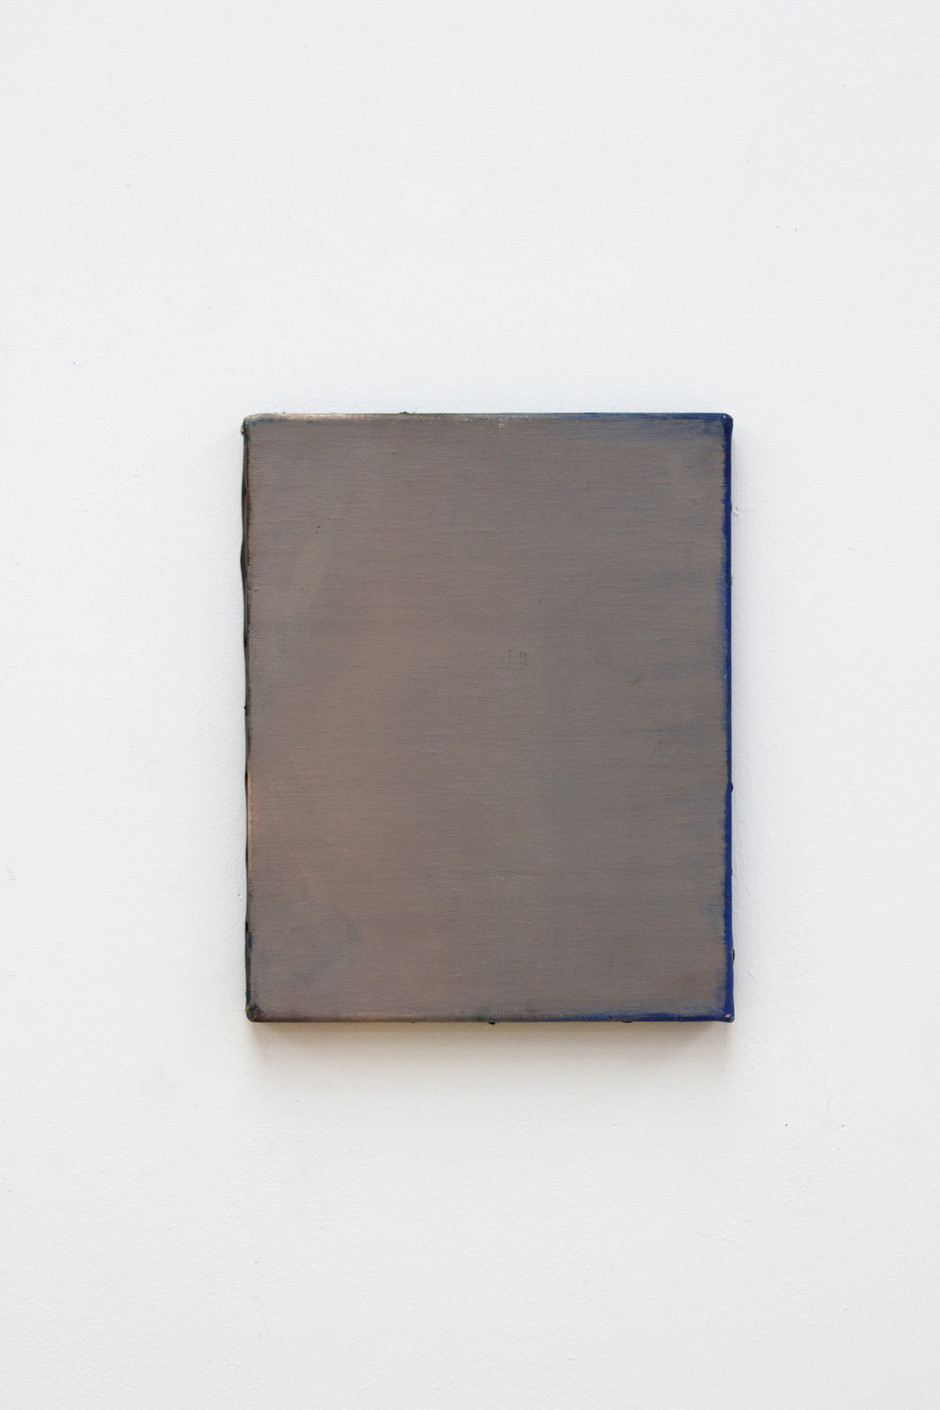 Untitled (Out of the blue) - Isa De Leener